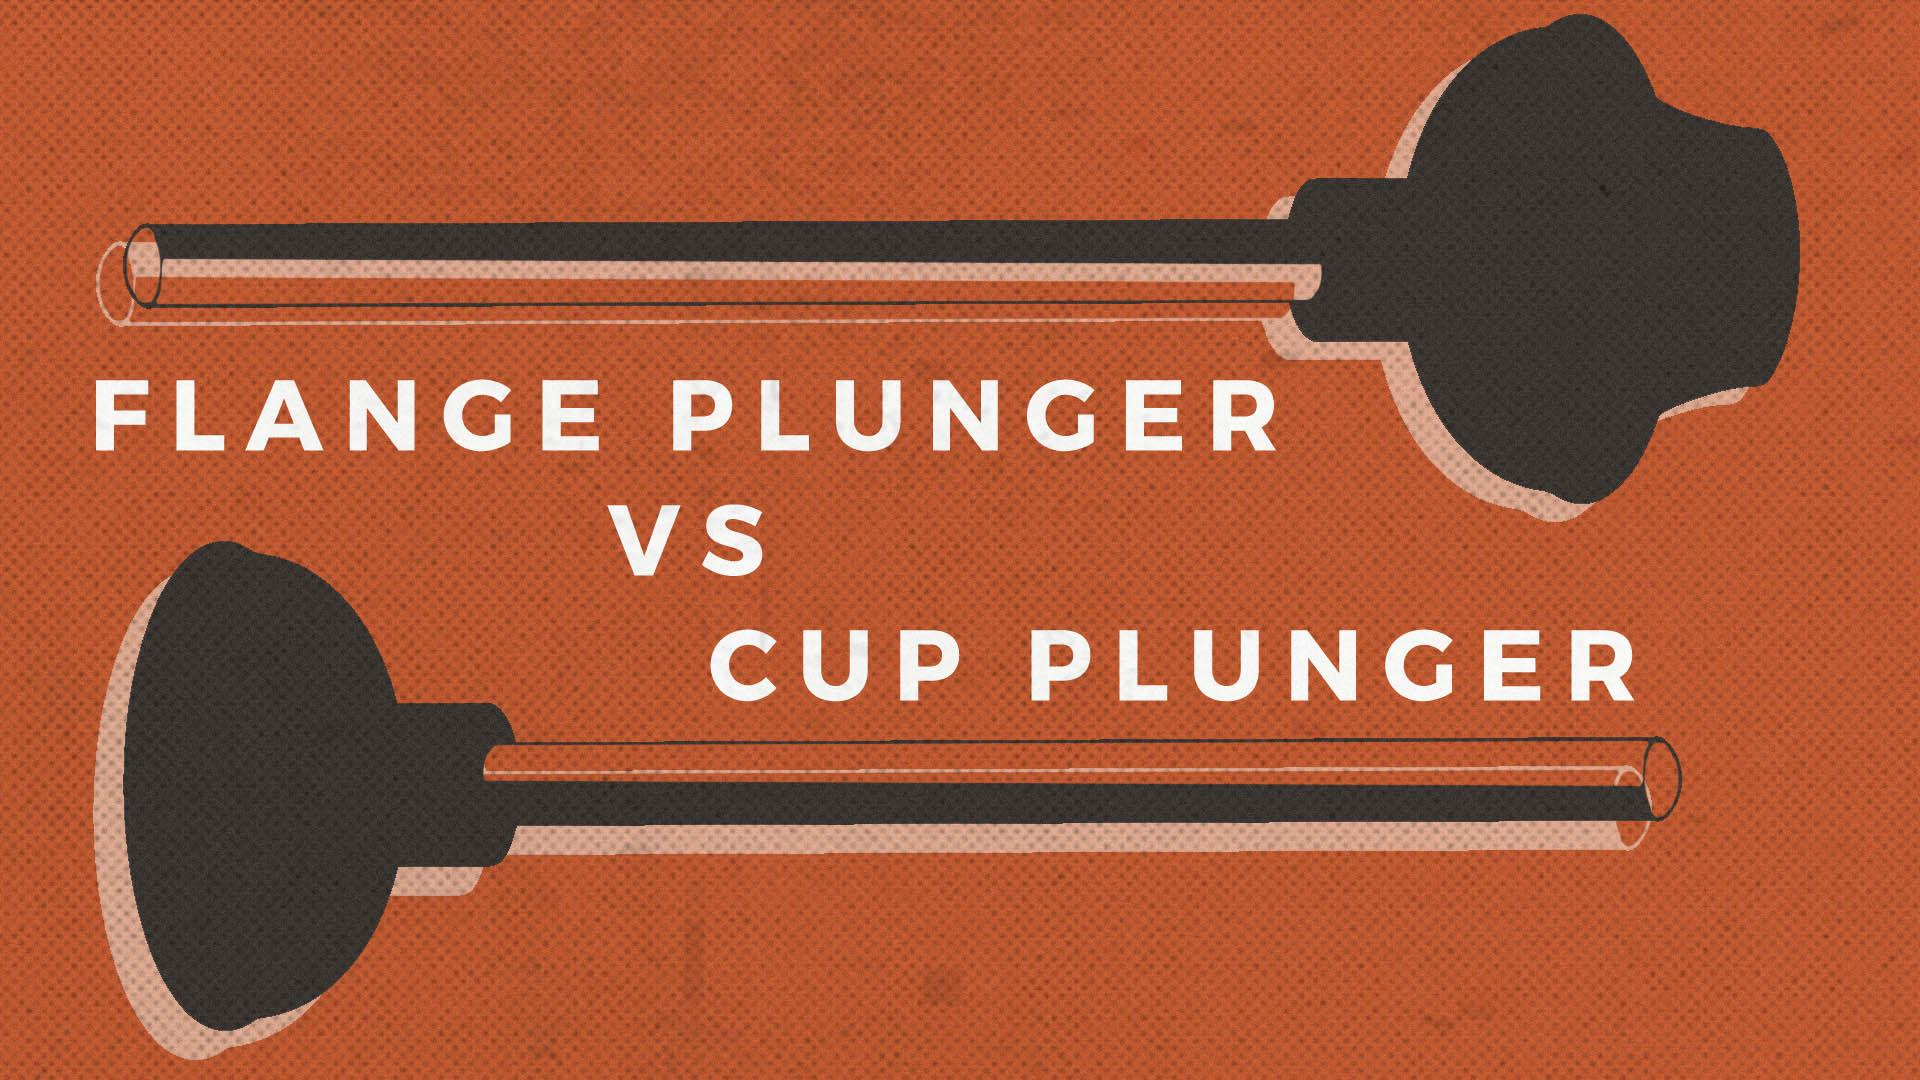 a vintage style illustration of a flange plunger and a cup plunger on a red halftone background